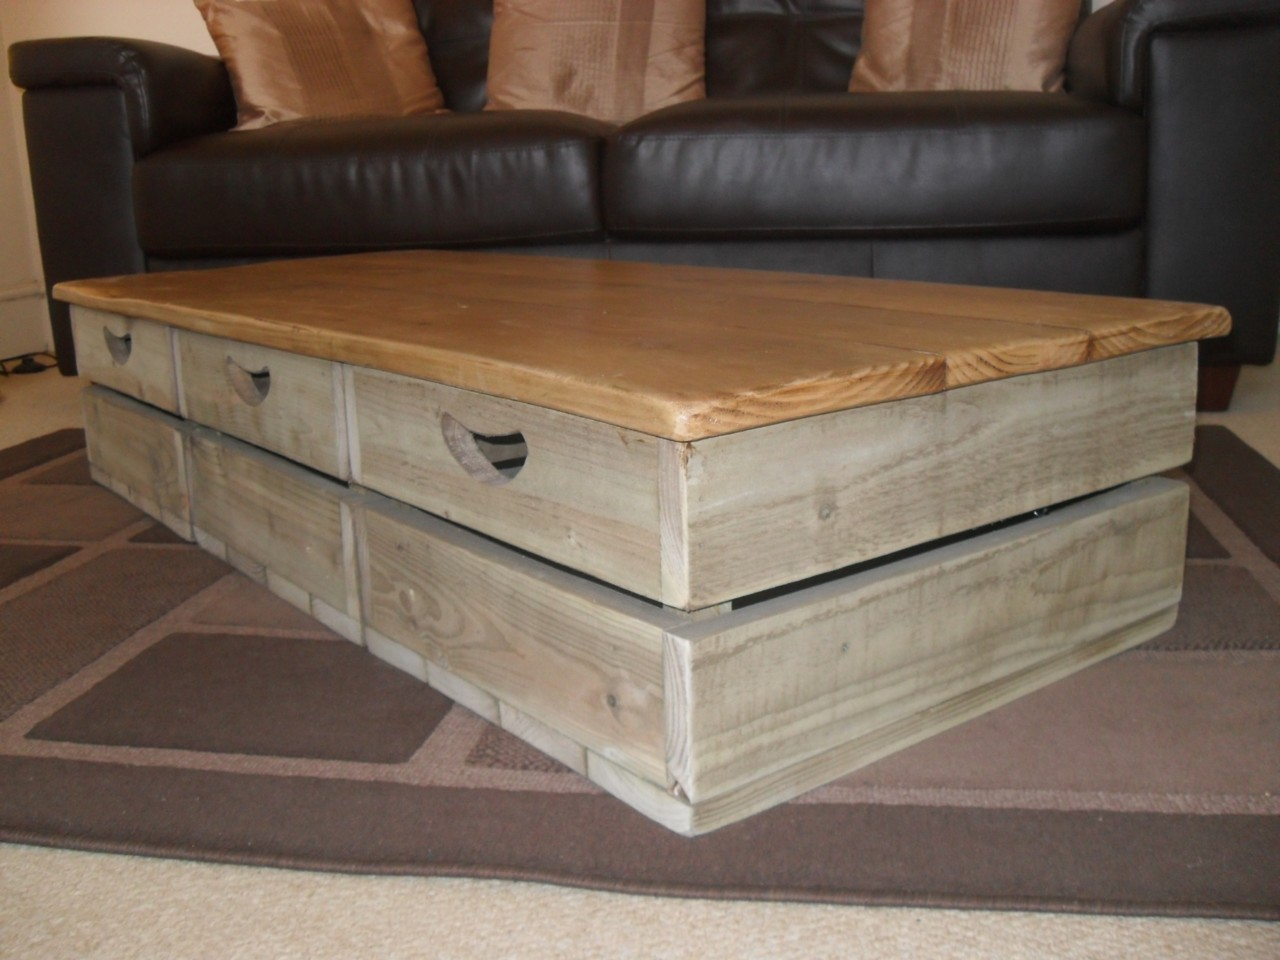 Interior Exterior Furniture Living Room Rustic Look Natural Finished Mahogany Storage Coffee Table With Standar (View 2 of 10)